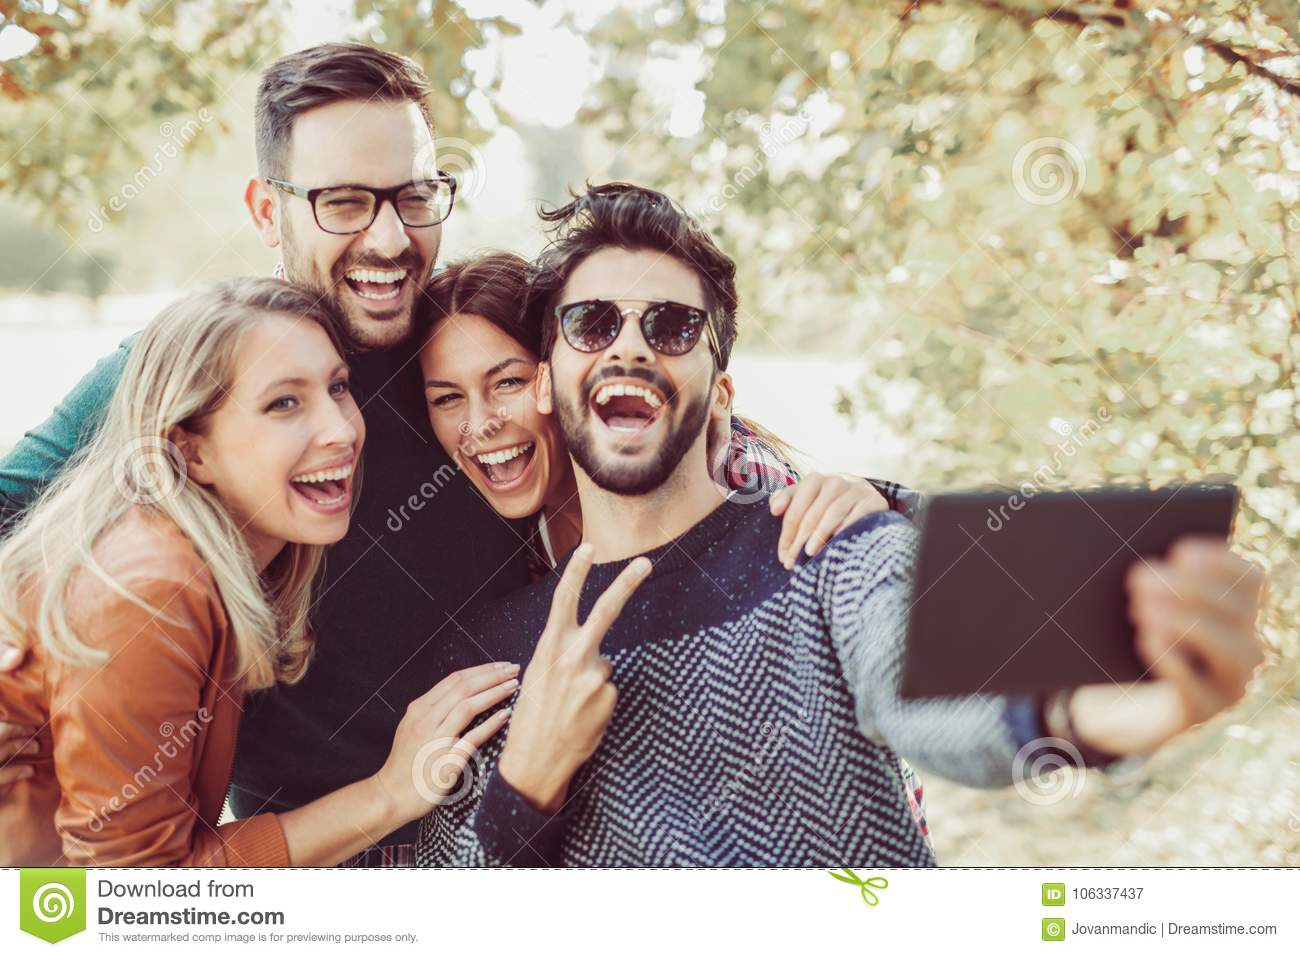 Young people in park with digital tablet having fun